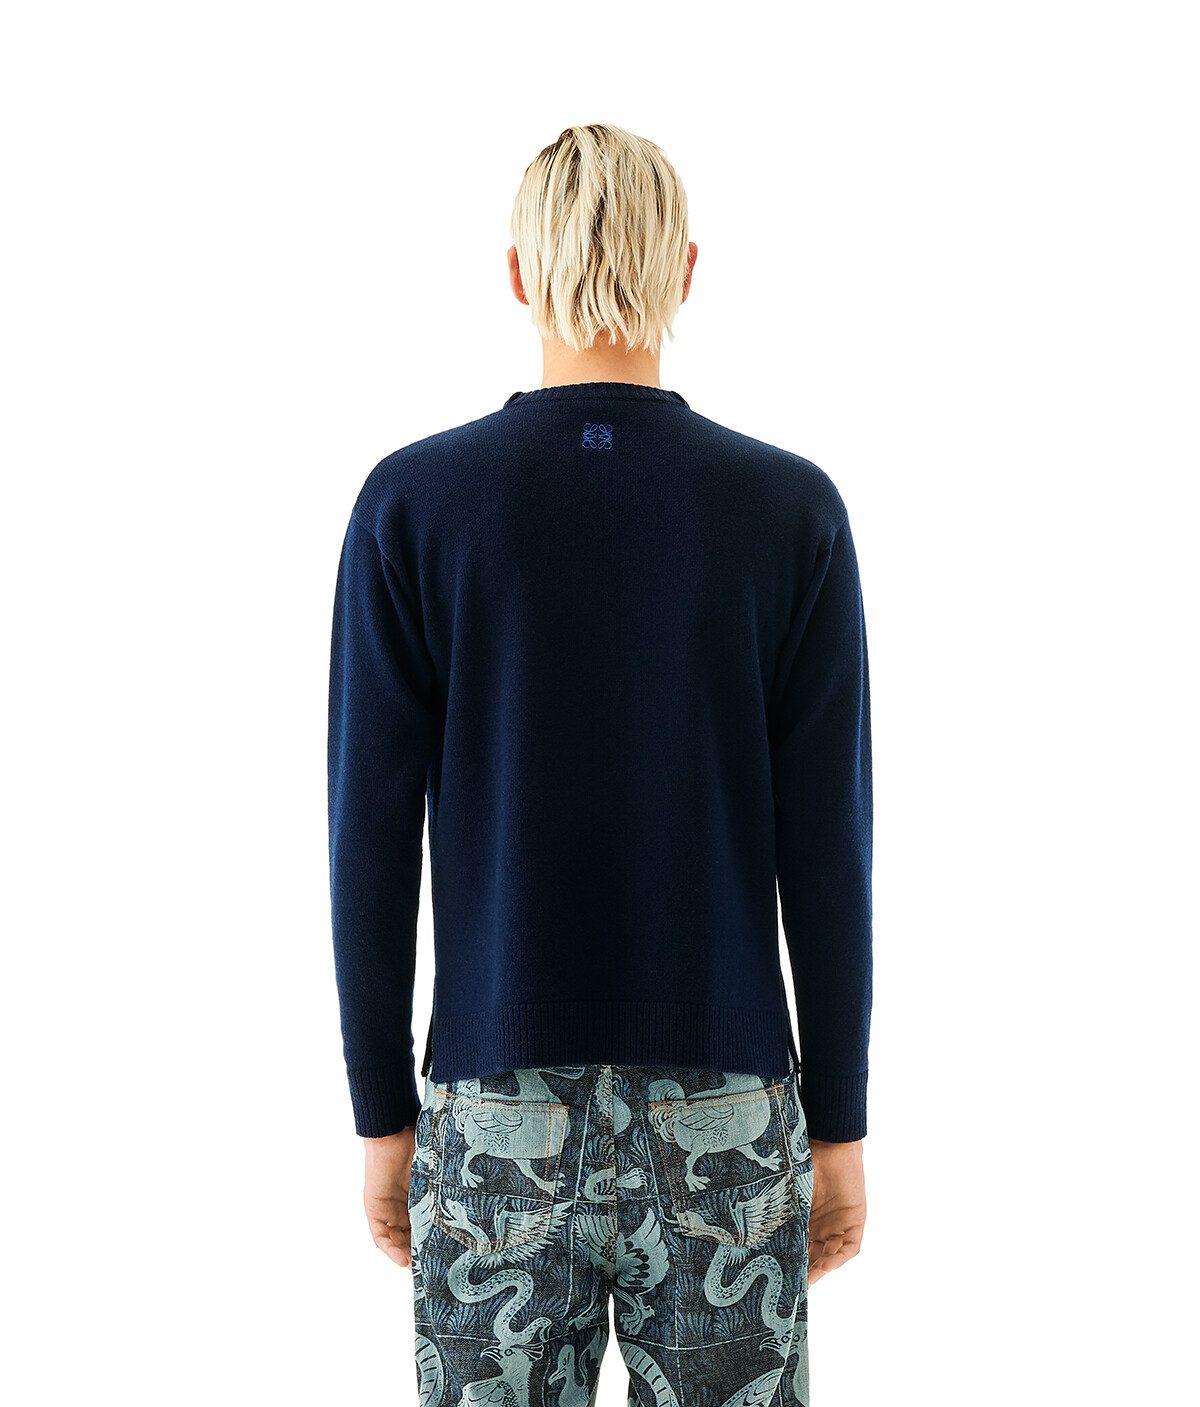 LOEWE Sweater Patch Pocket Dodo 海軍藍 front